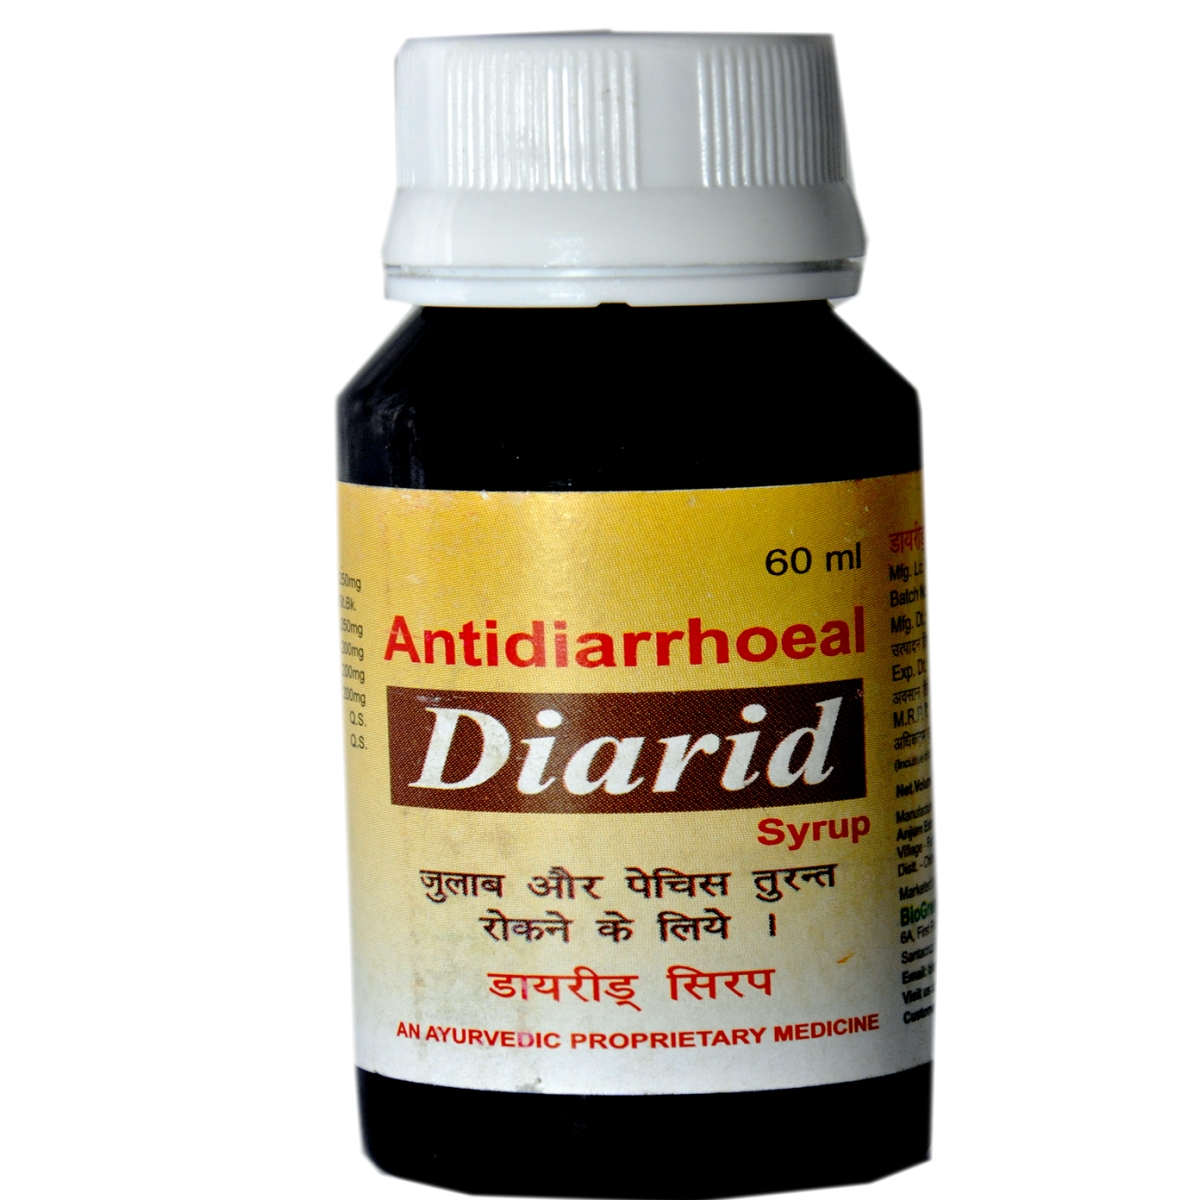 Diarid Syrup In Bettiah